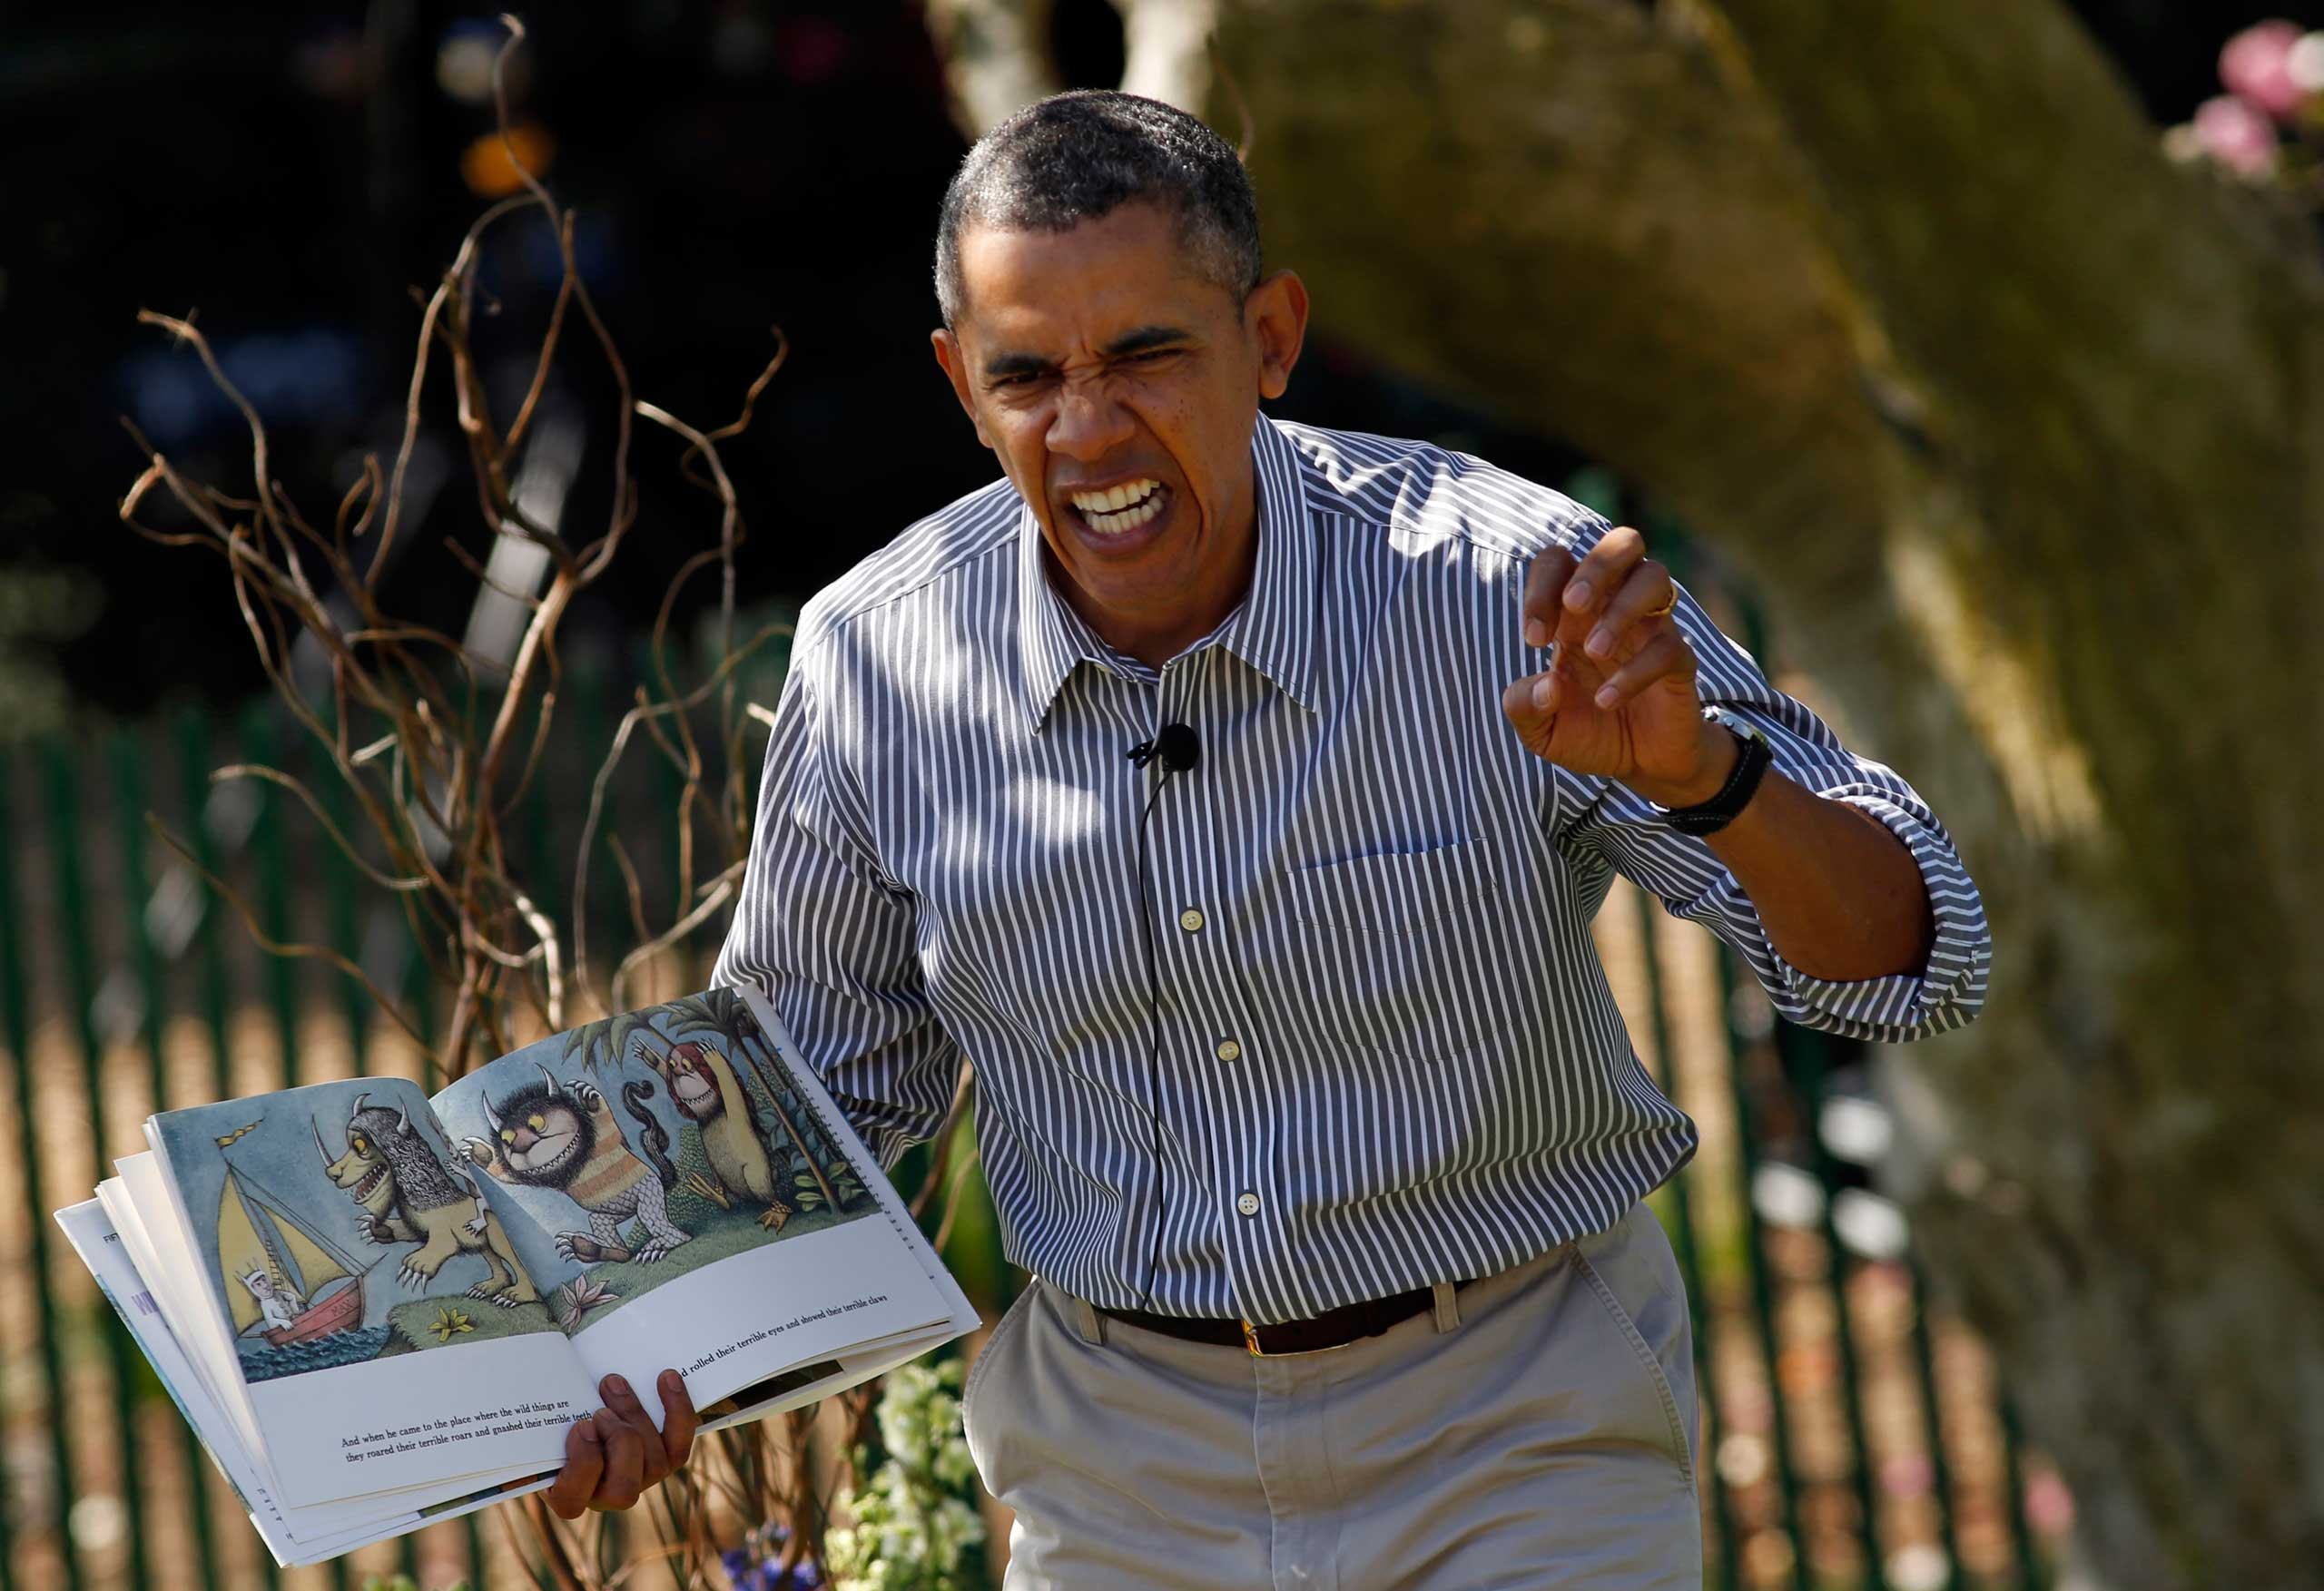 U.S. President Barack Obama acts out the line  gnashed their terrible teeth  from the children's book  Where the Wild Things Are  during the 136th annual Easter Egg Roll on the South Lawn of the White House in Washington, D.C., April 21, 2014.